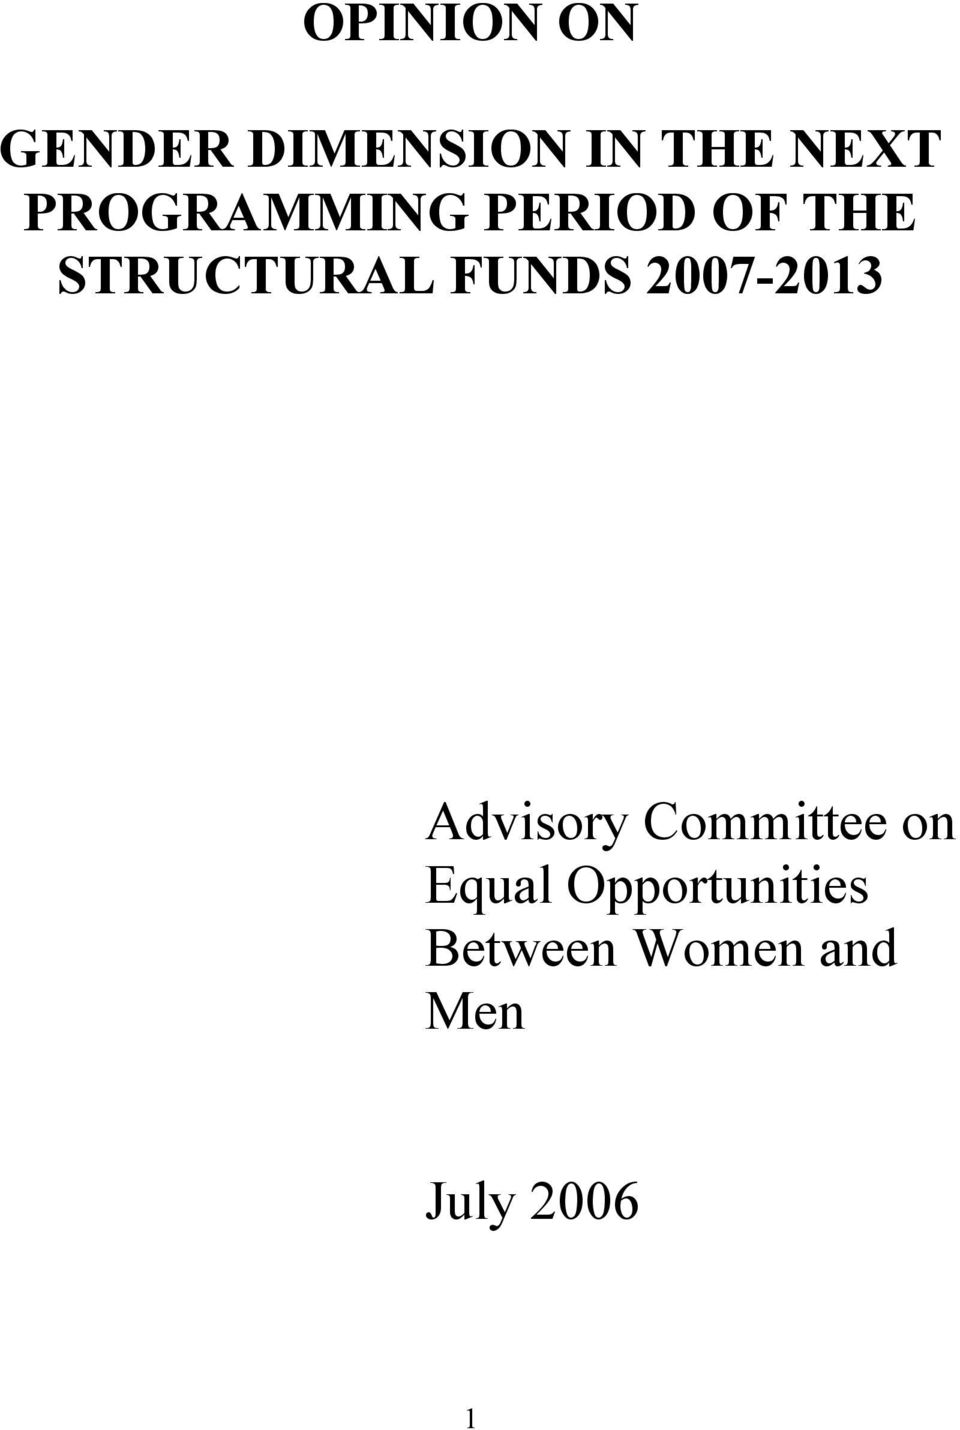 FUNDS 2007-2013 Advisory Committee on